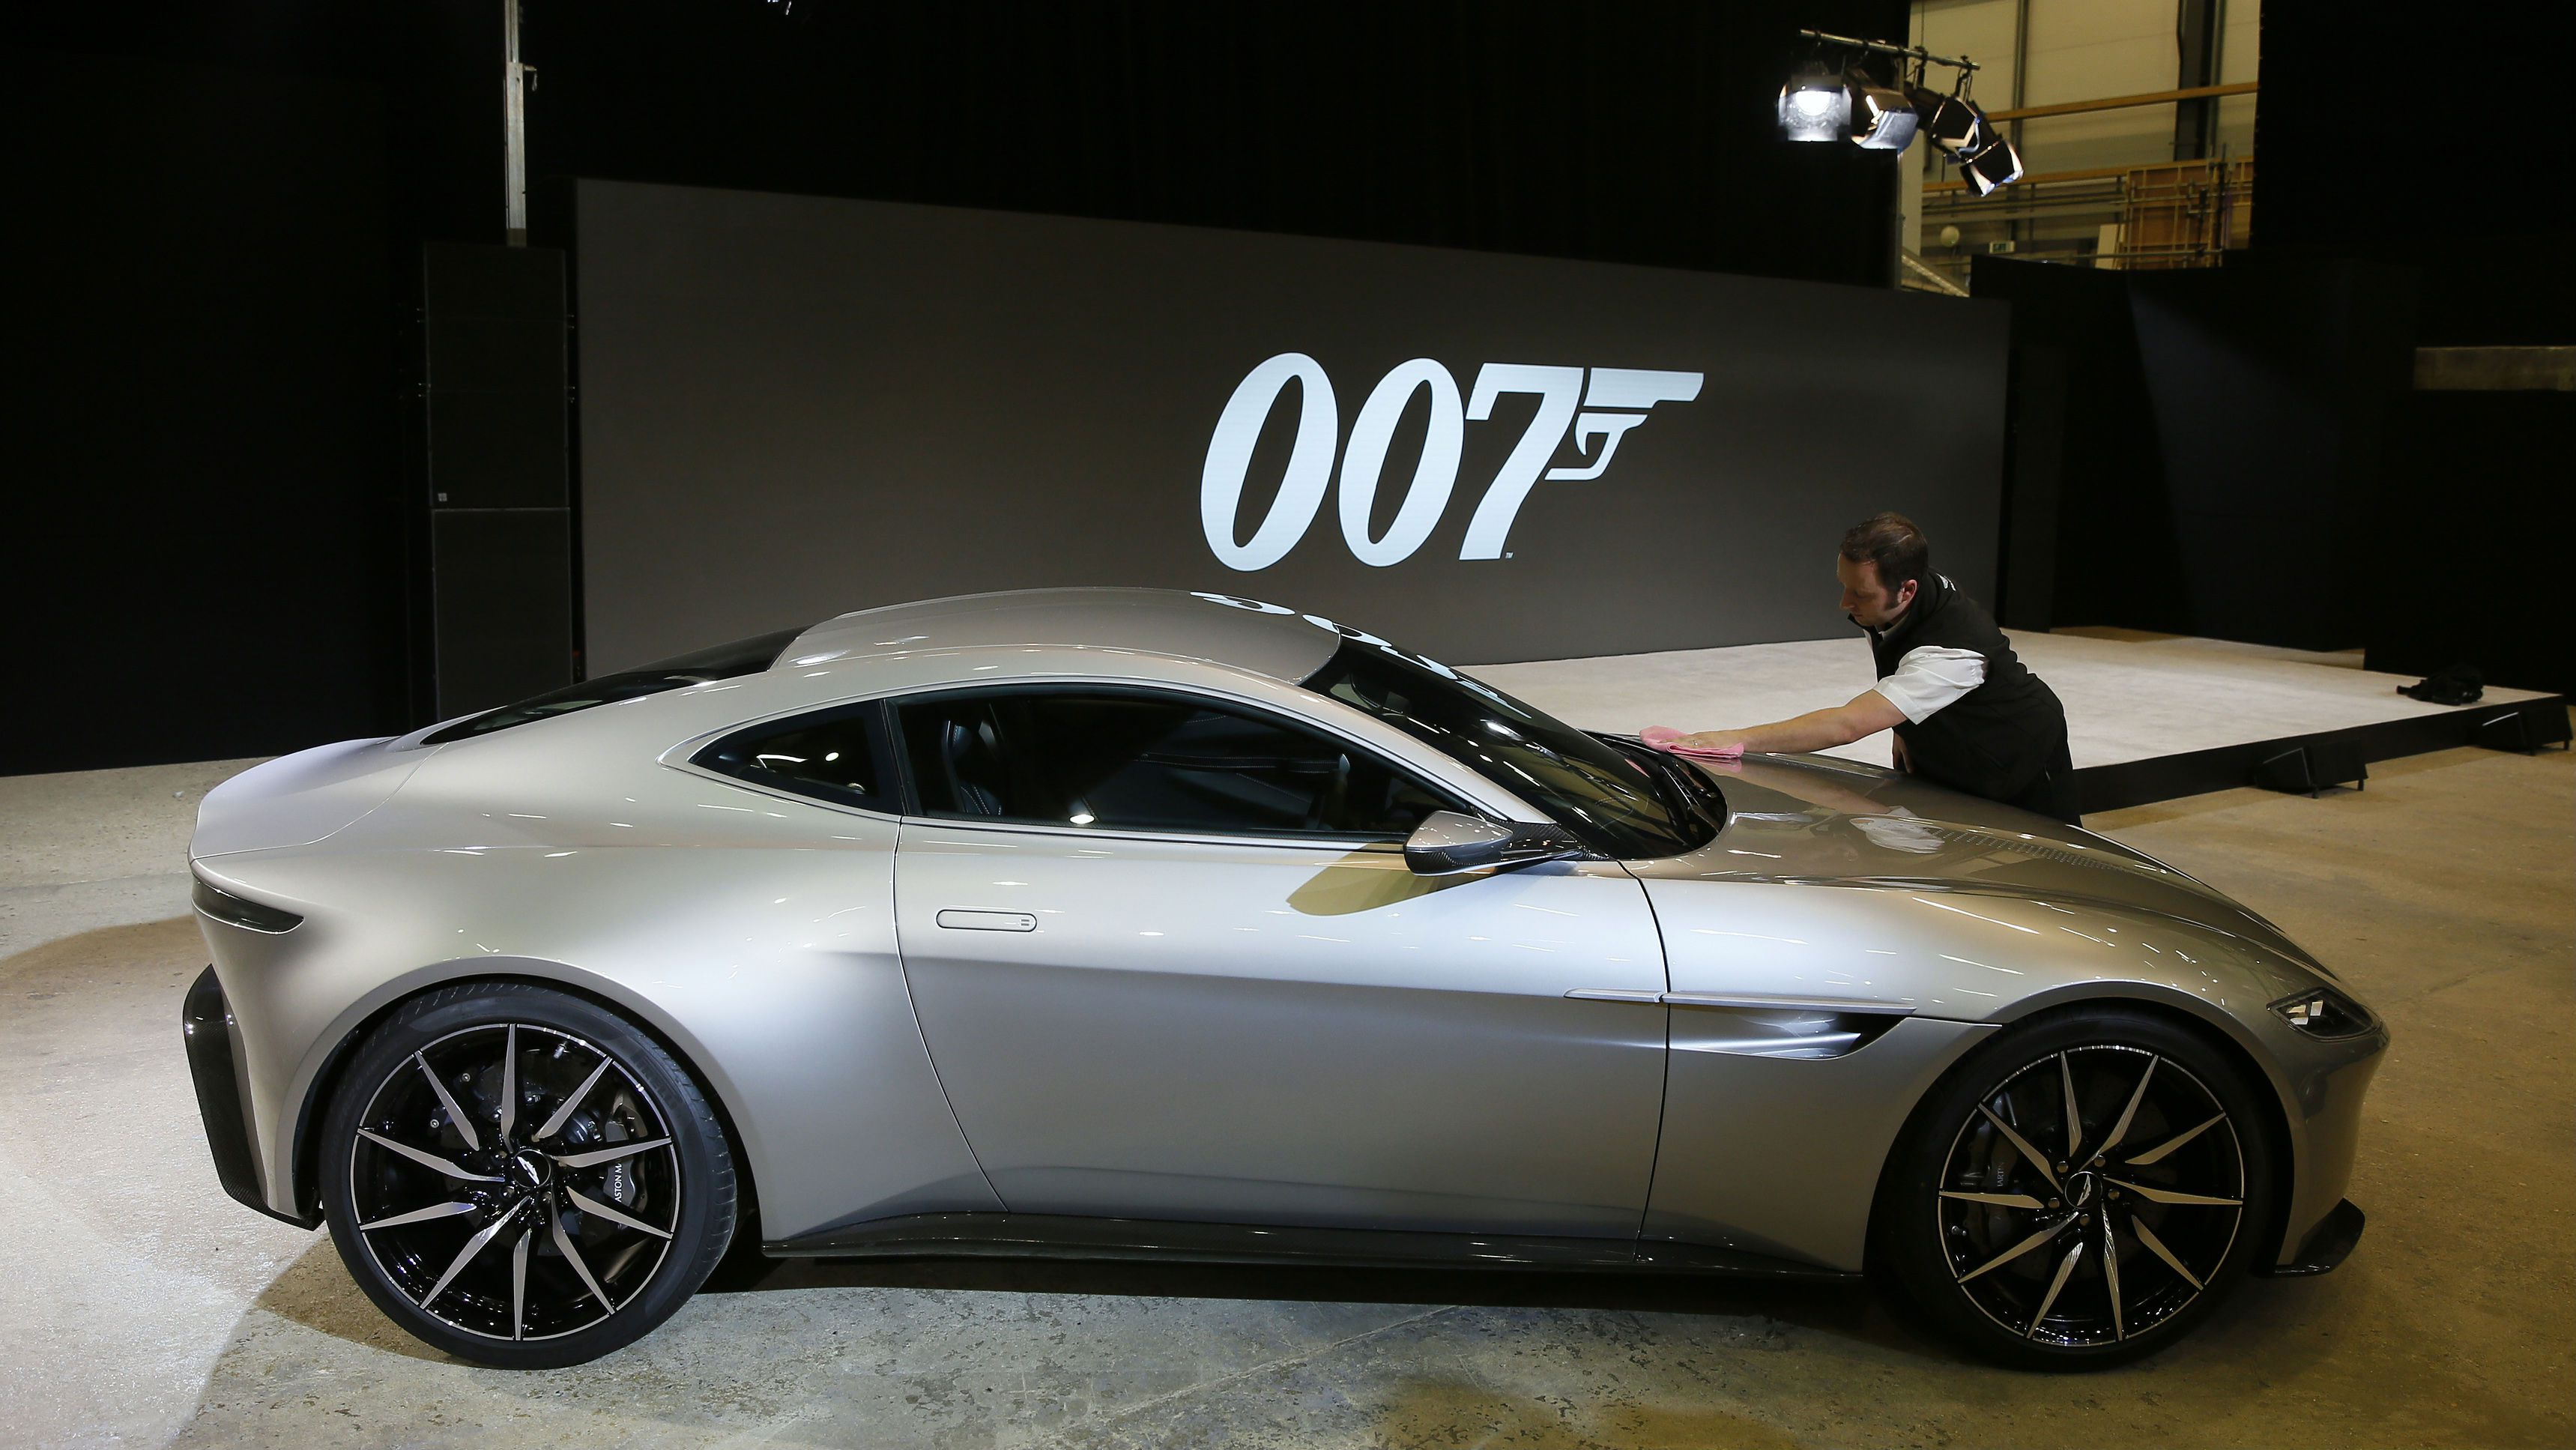 The Other Star Of The New James Bond Film Spectre The